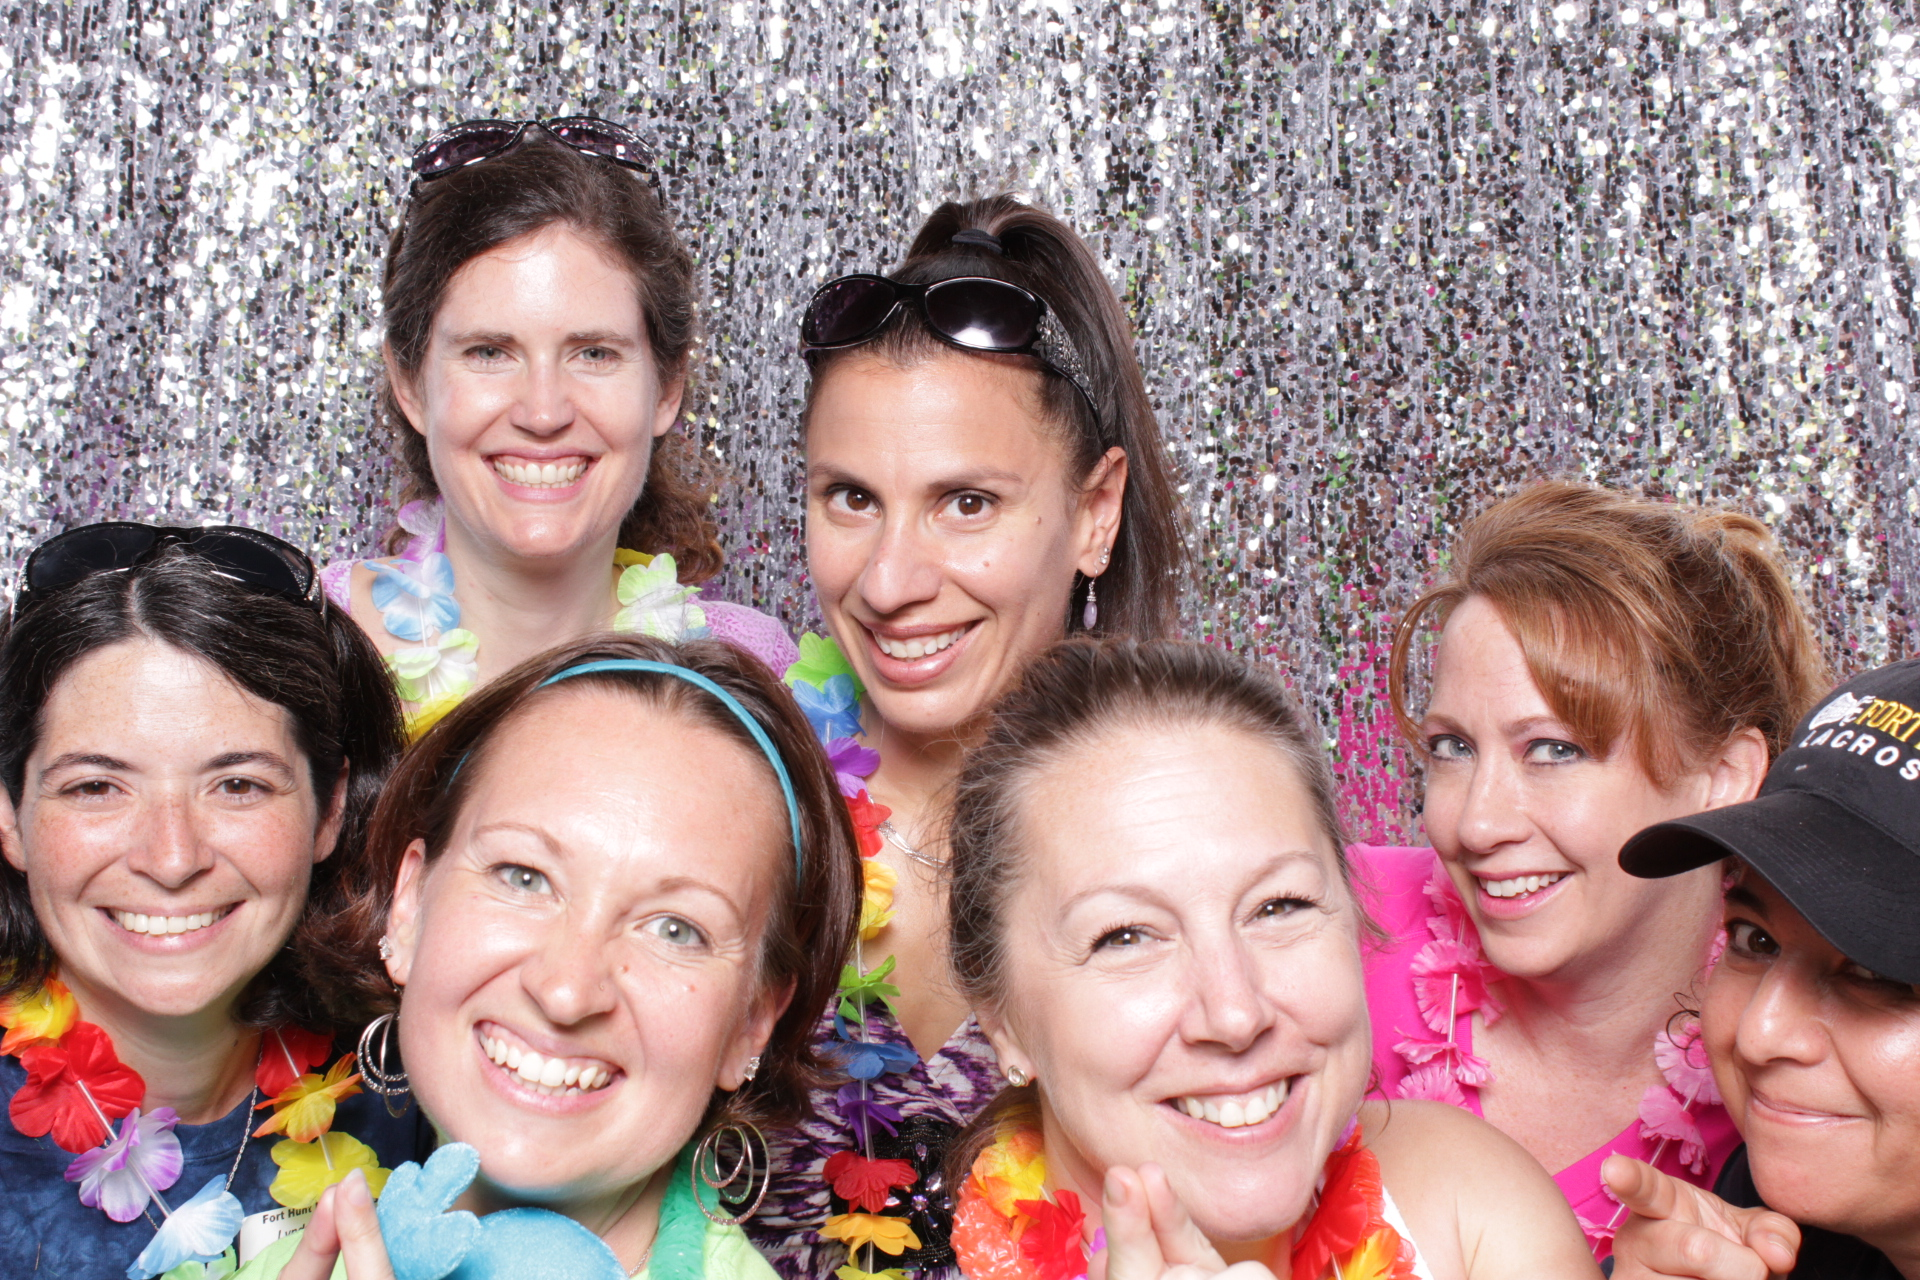 FORT HUNT ELEMENTARY 6TH GRADE PICNIC | HOT PINK PHOTO BOOTH